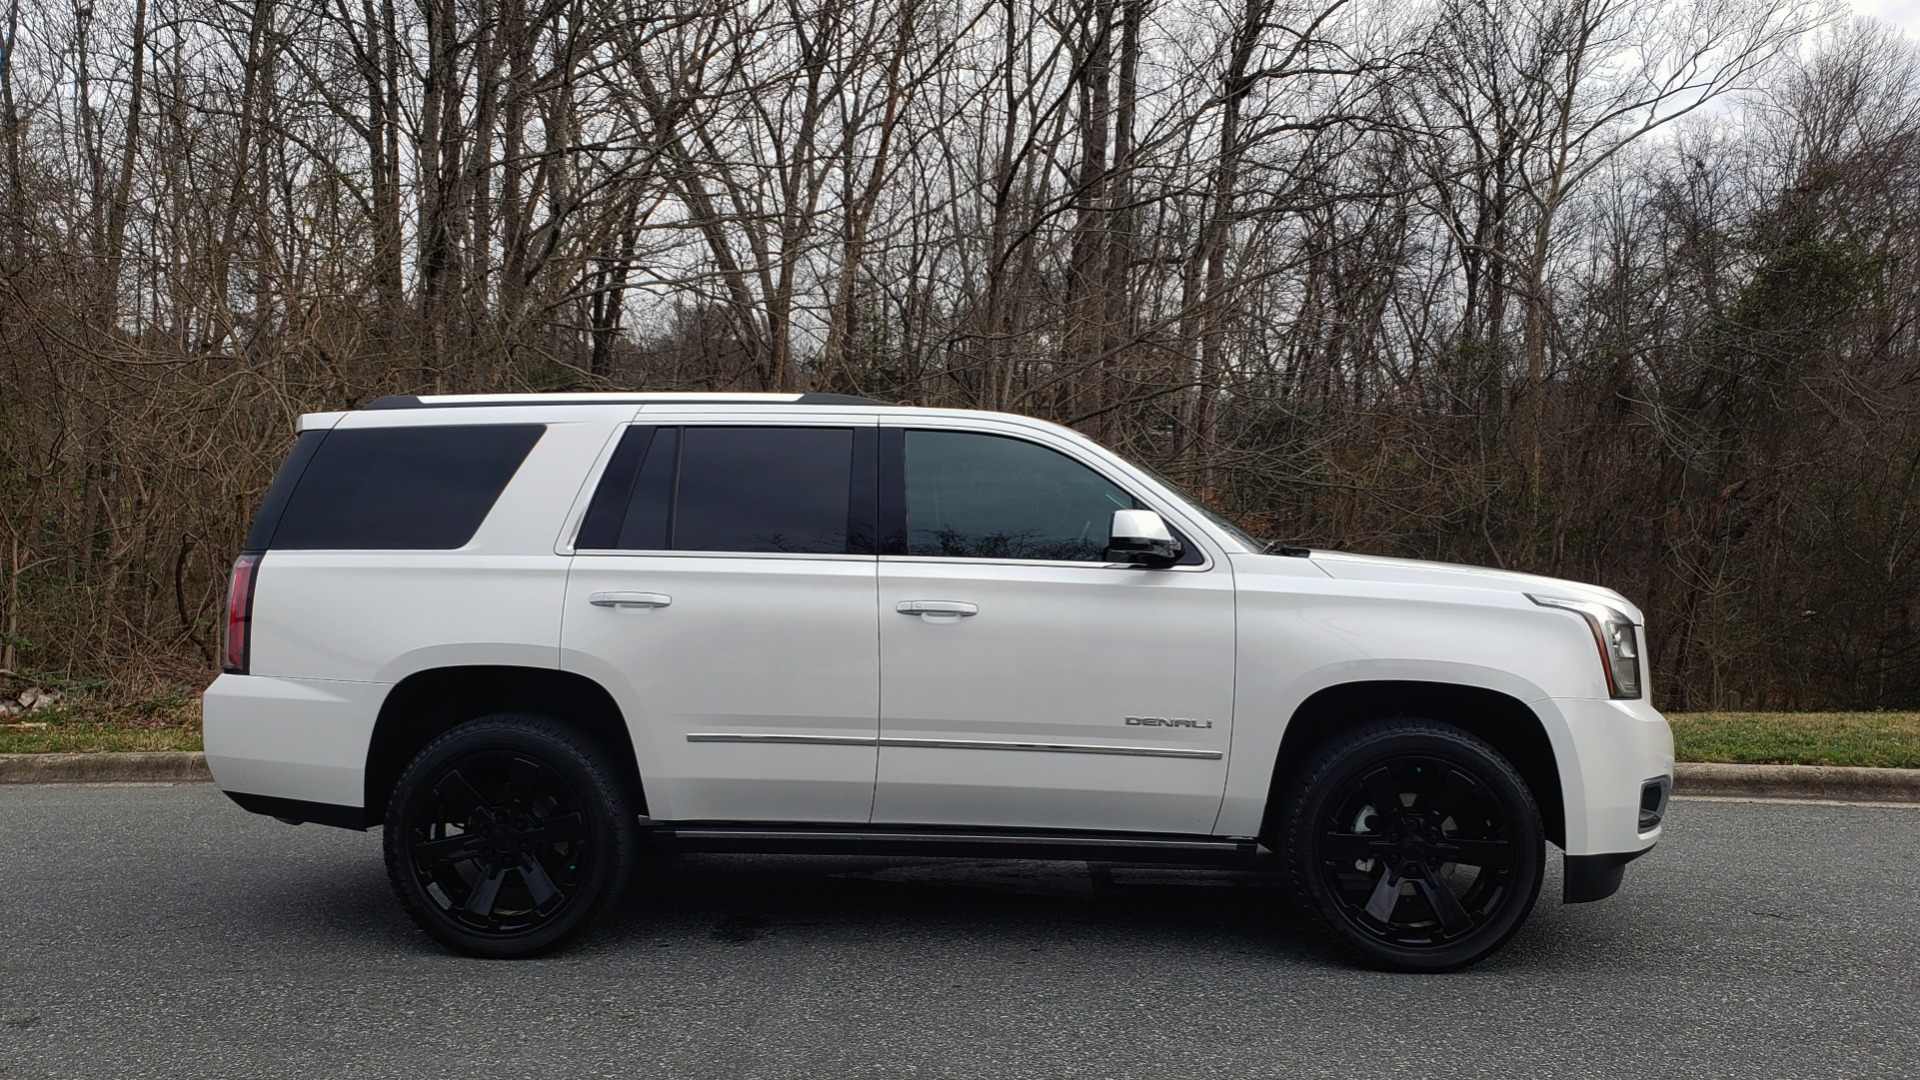 Used 2018 GMC YUKON DENALI 4WD / NAV / SUNROOF / BOSE / 3-ROW / REARVIEW for sale Sold at Formula Imports in Charlotte NC 28227 5